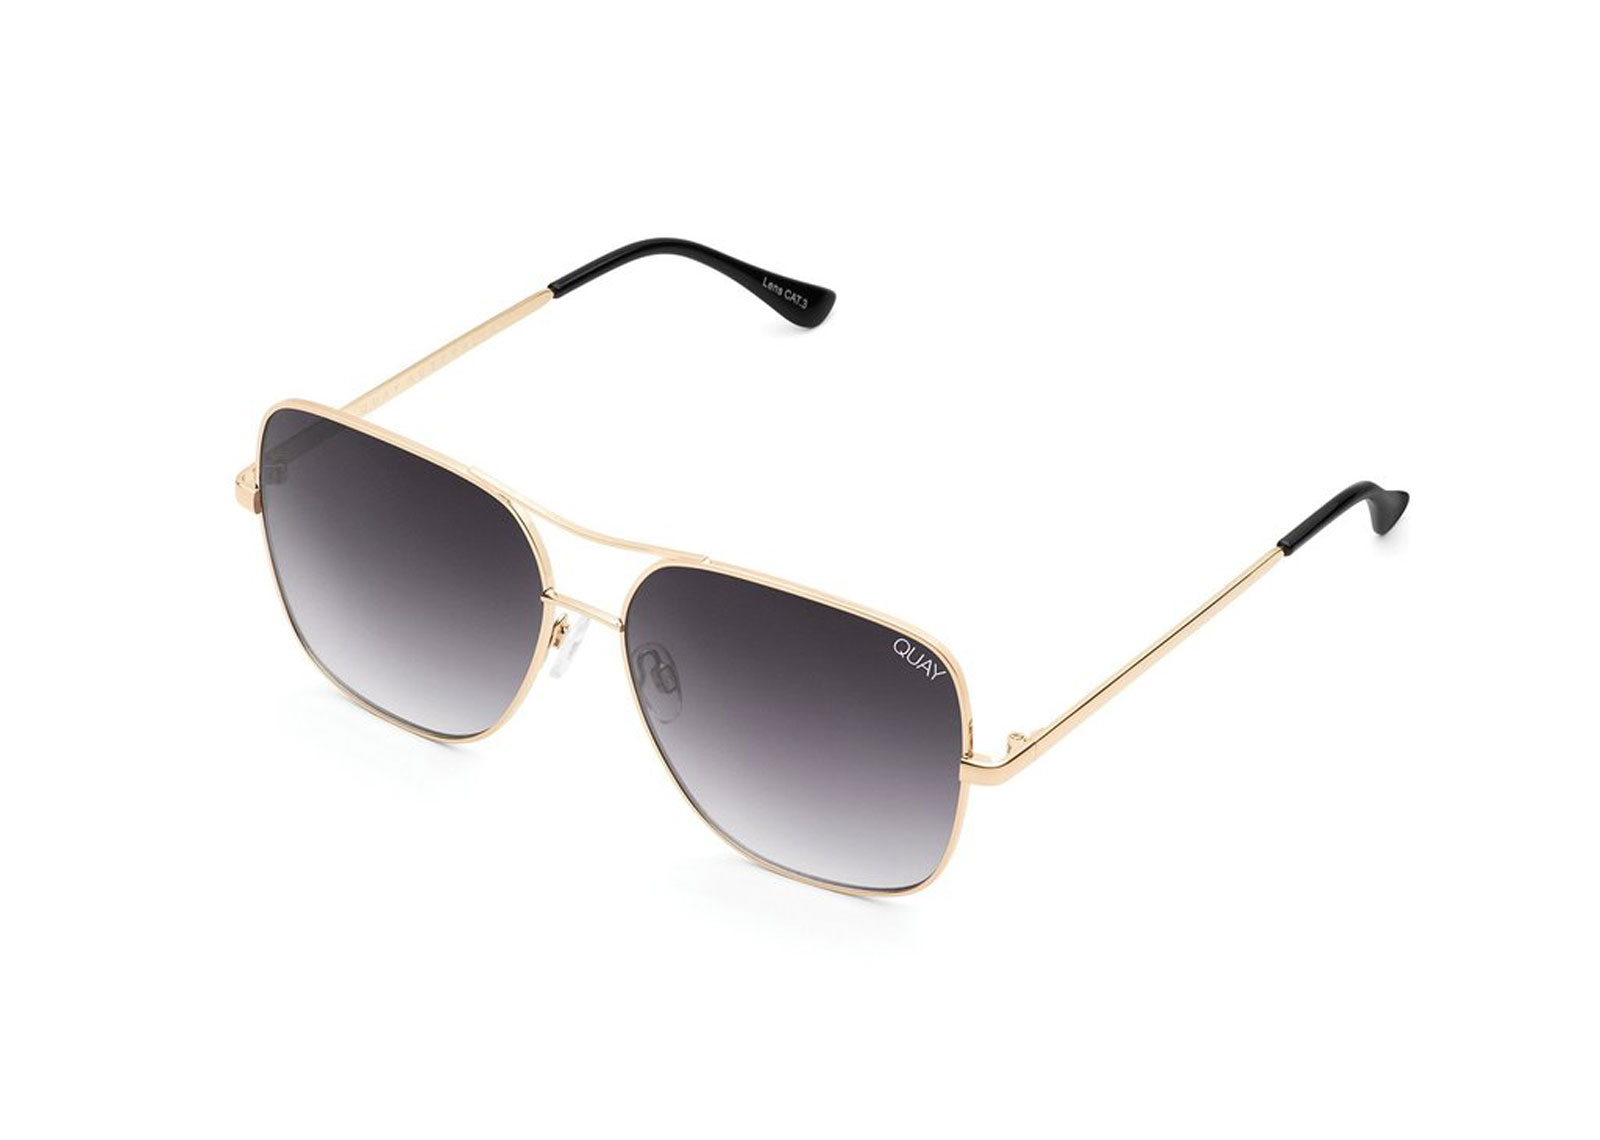 Gold and black wire aviator sunglasses